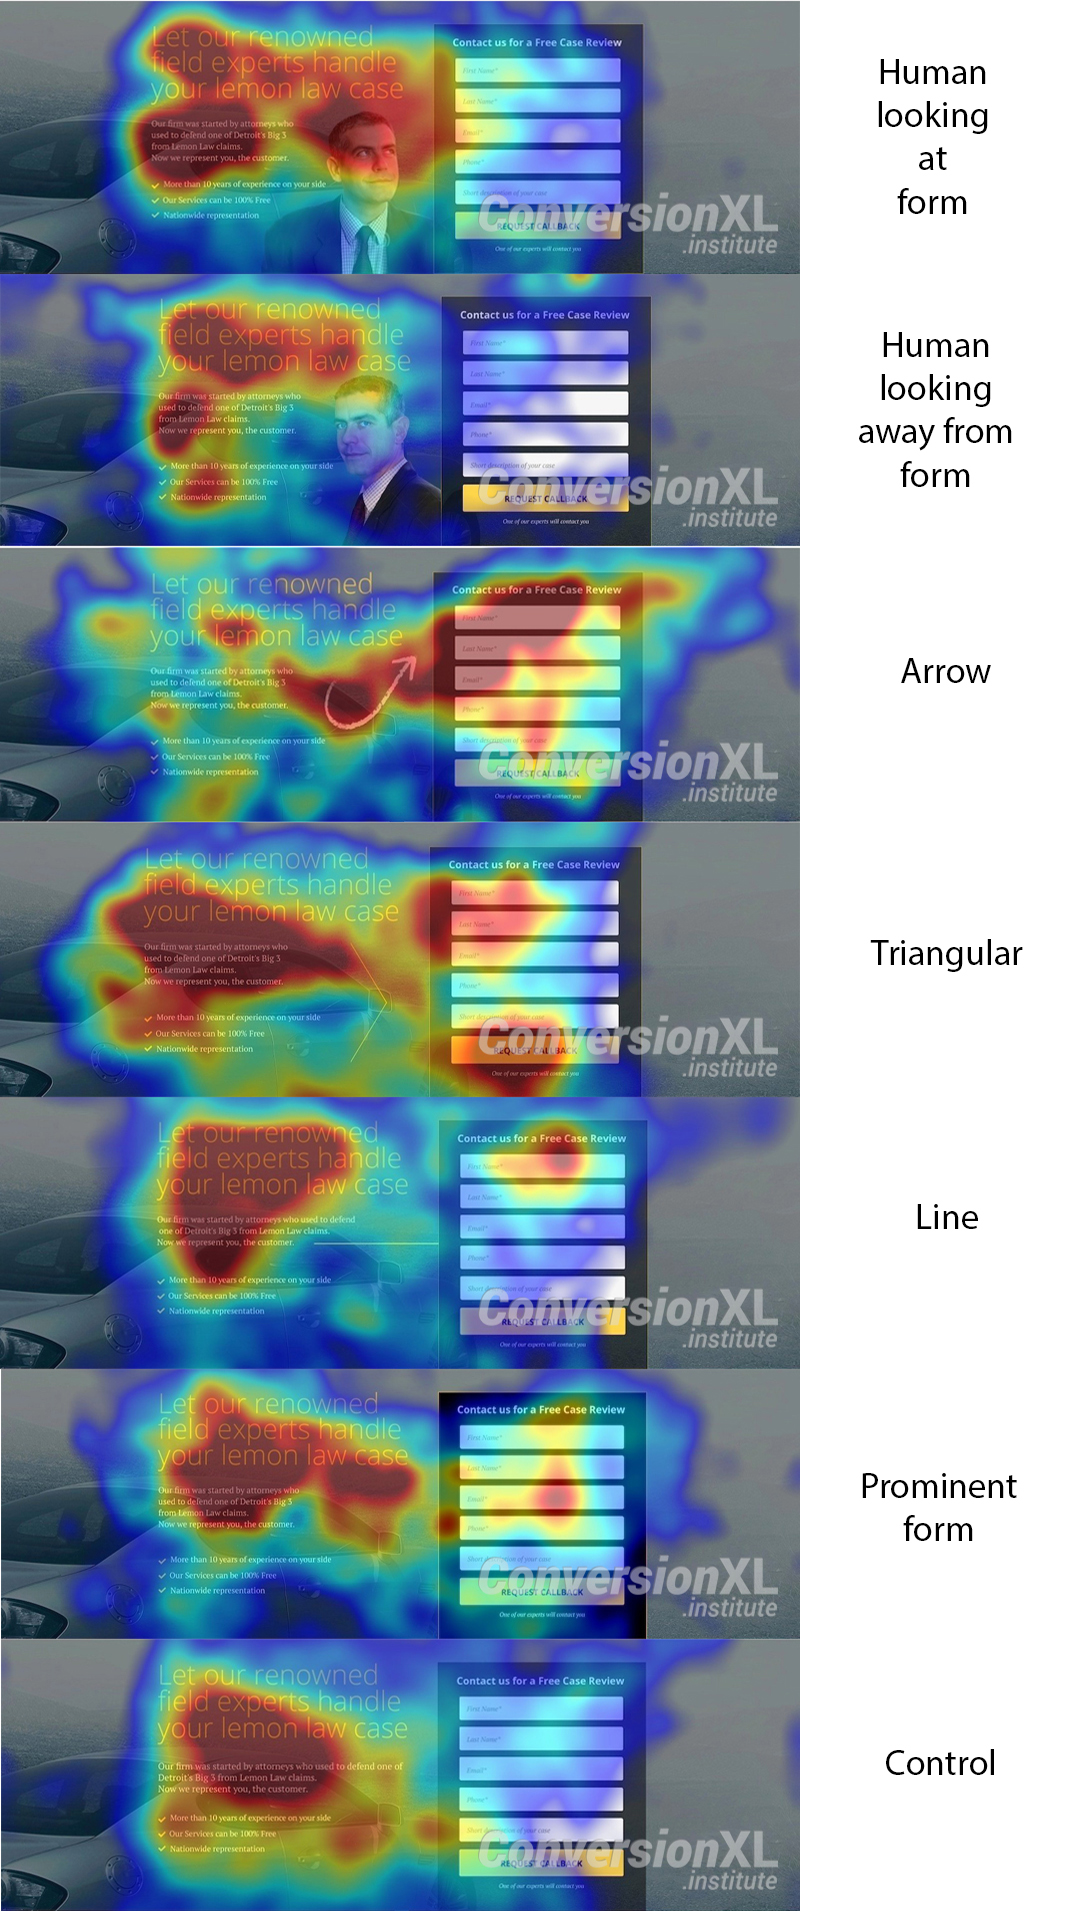 Visual cue treatments with aggregate heatmap displayed.